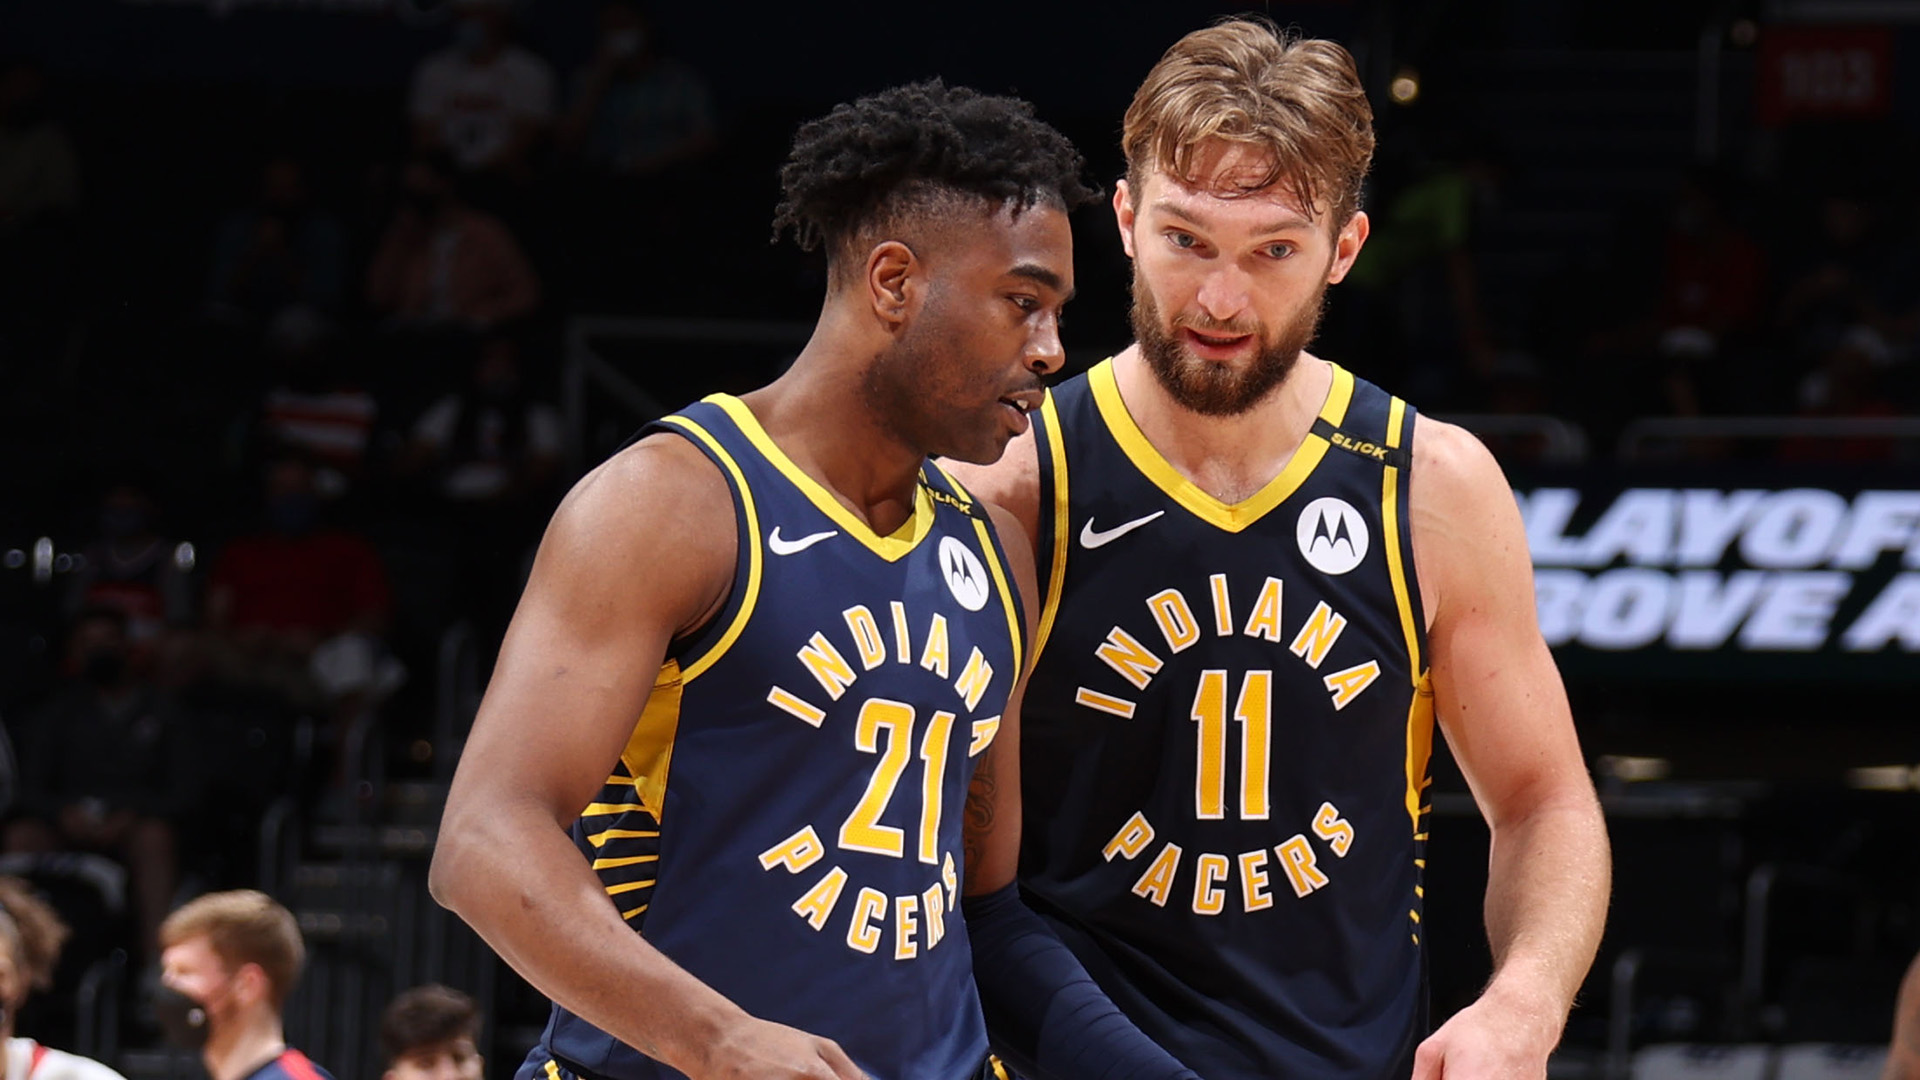 Inside the NBA: What went wrong for Pacers this season?